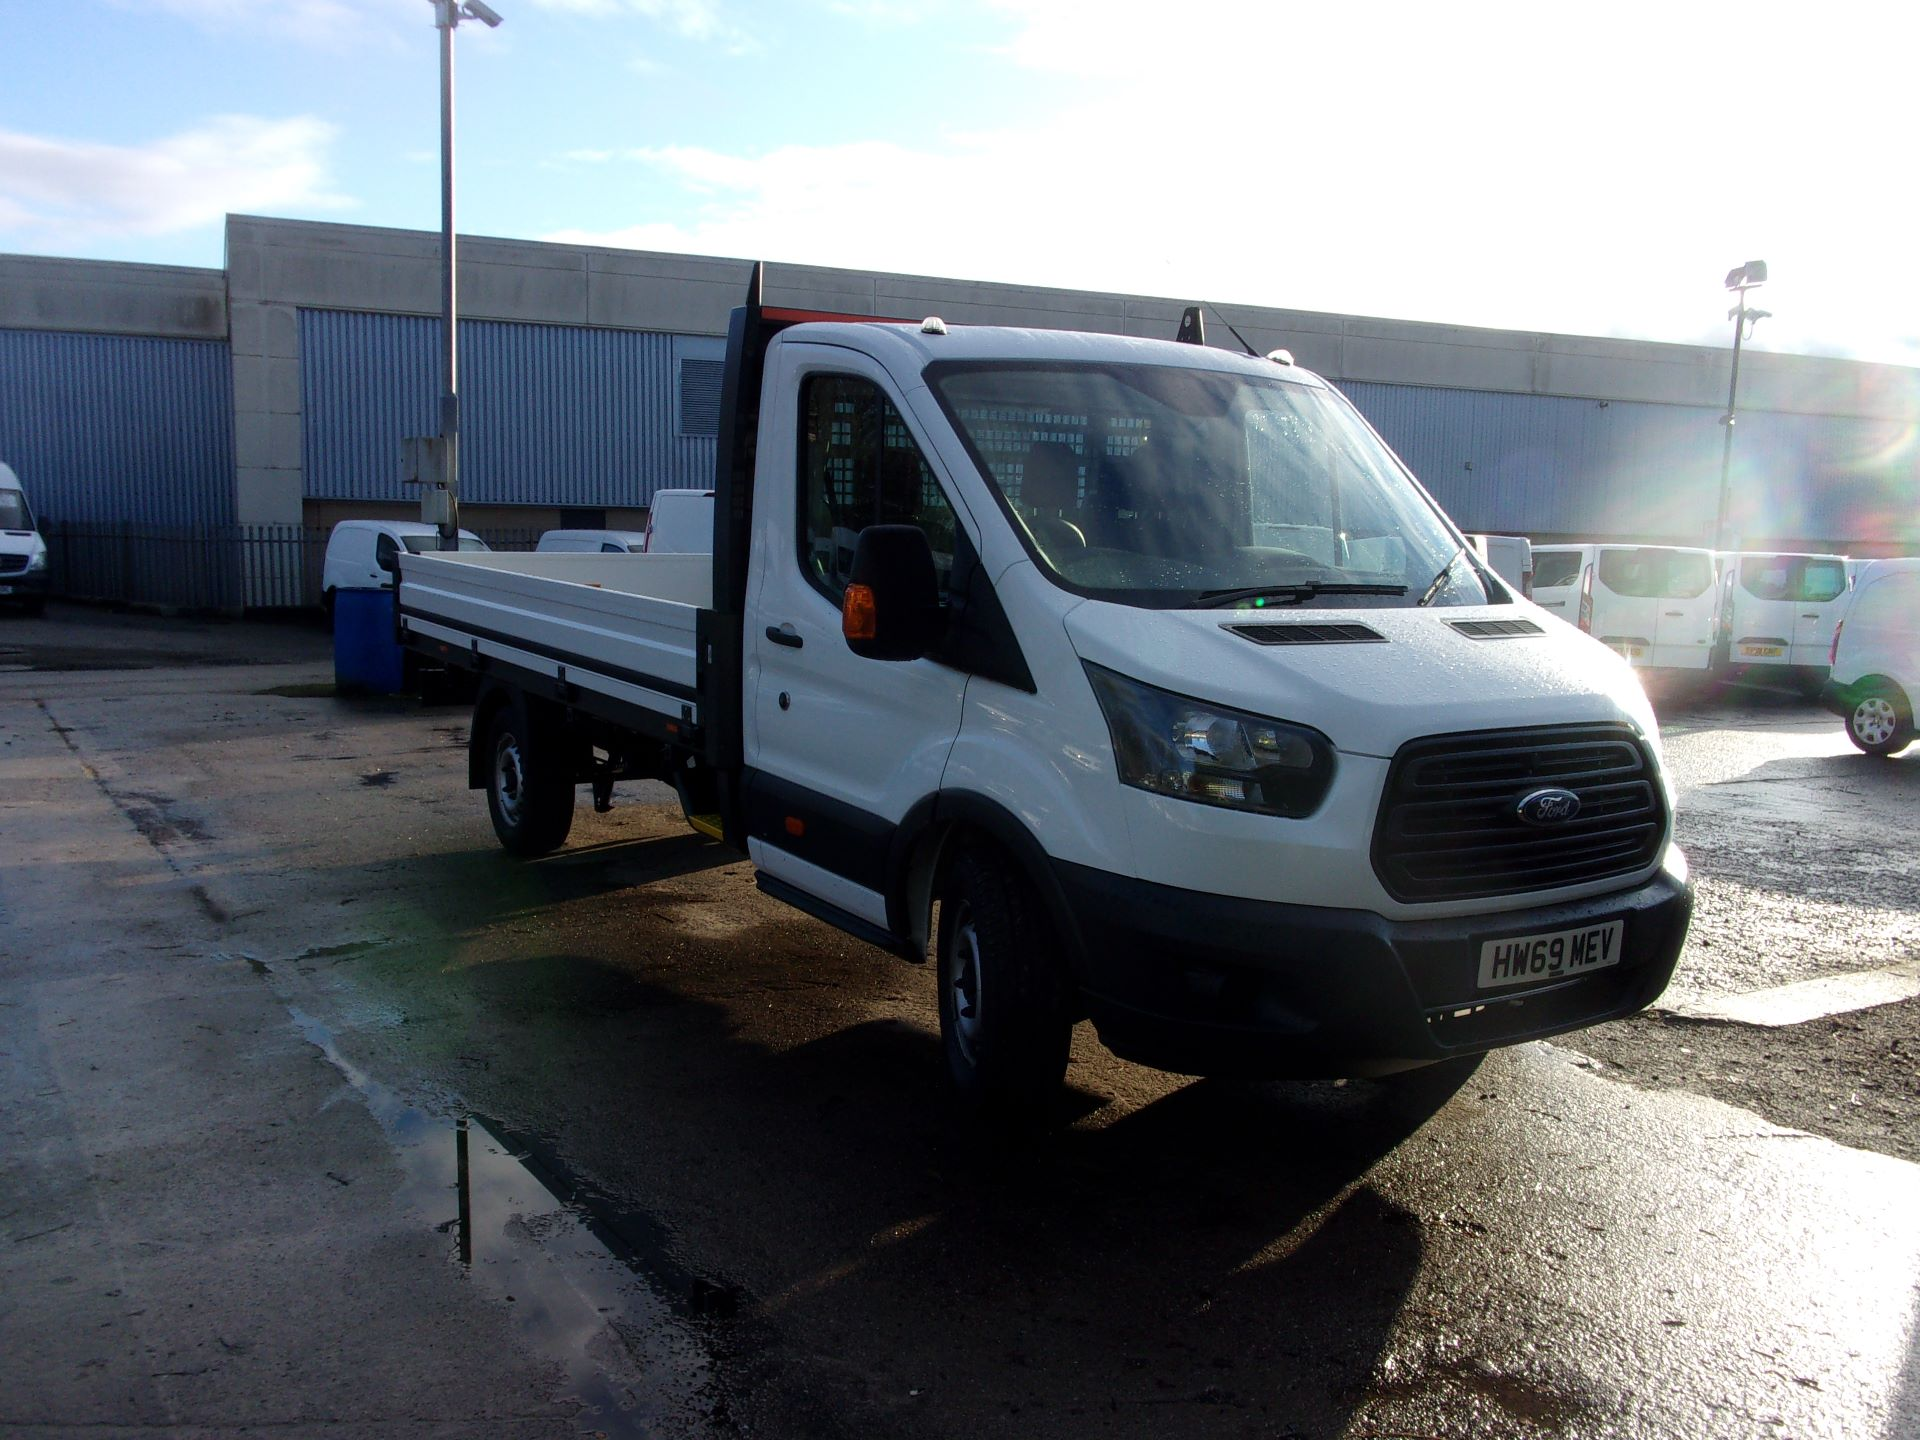 2019 Ford Transit 350 L4 DIESEL FWD 2.0 TDCI 130PS DROPSIDE EURO 6 (HW69MEV) Thumbnail 1